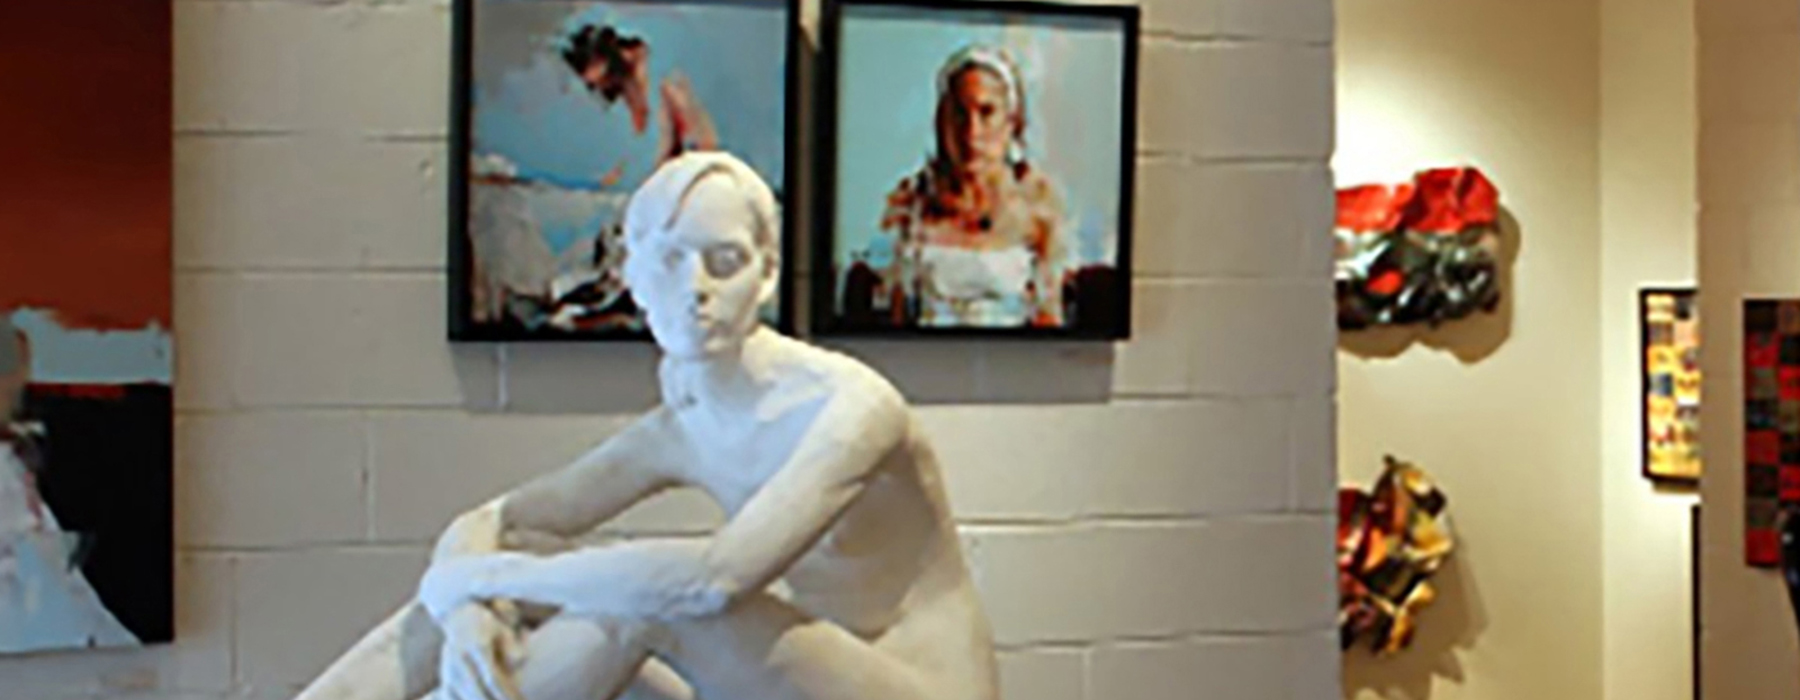 Maggie Rose - LeQuire Gallery | Contemporary Paintings | Sculpture | Art | Portraiture